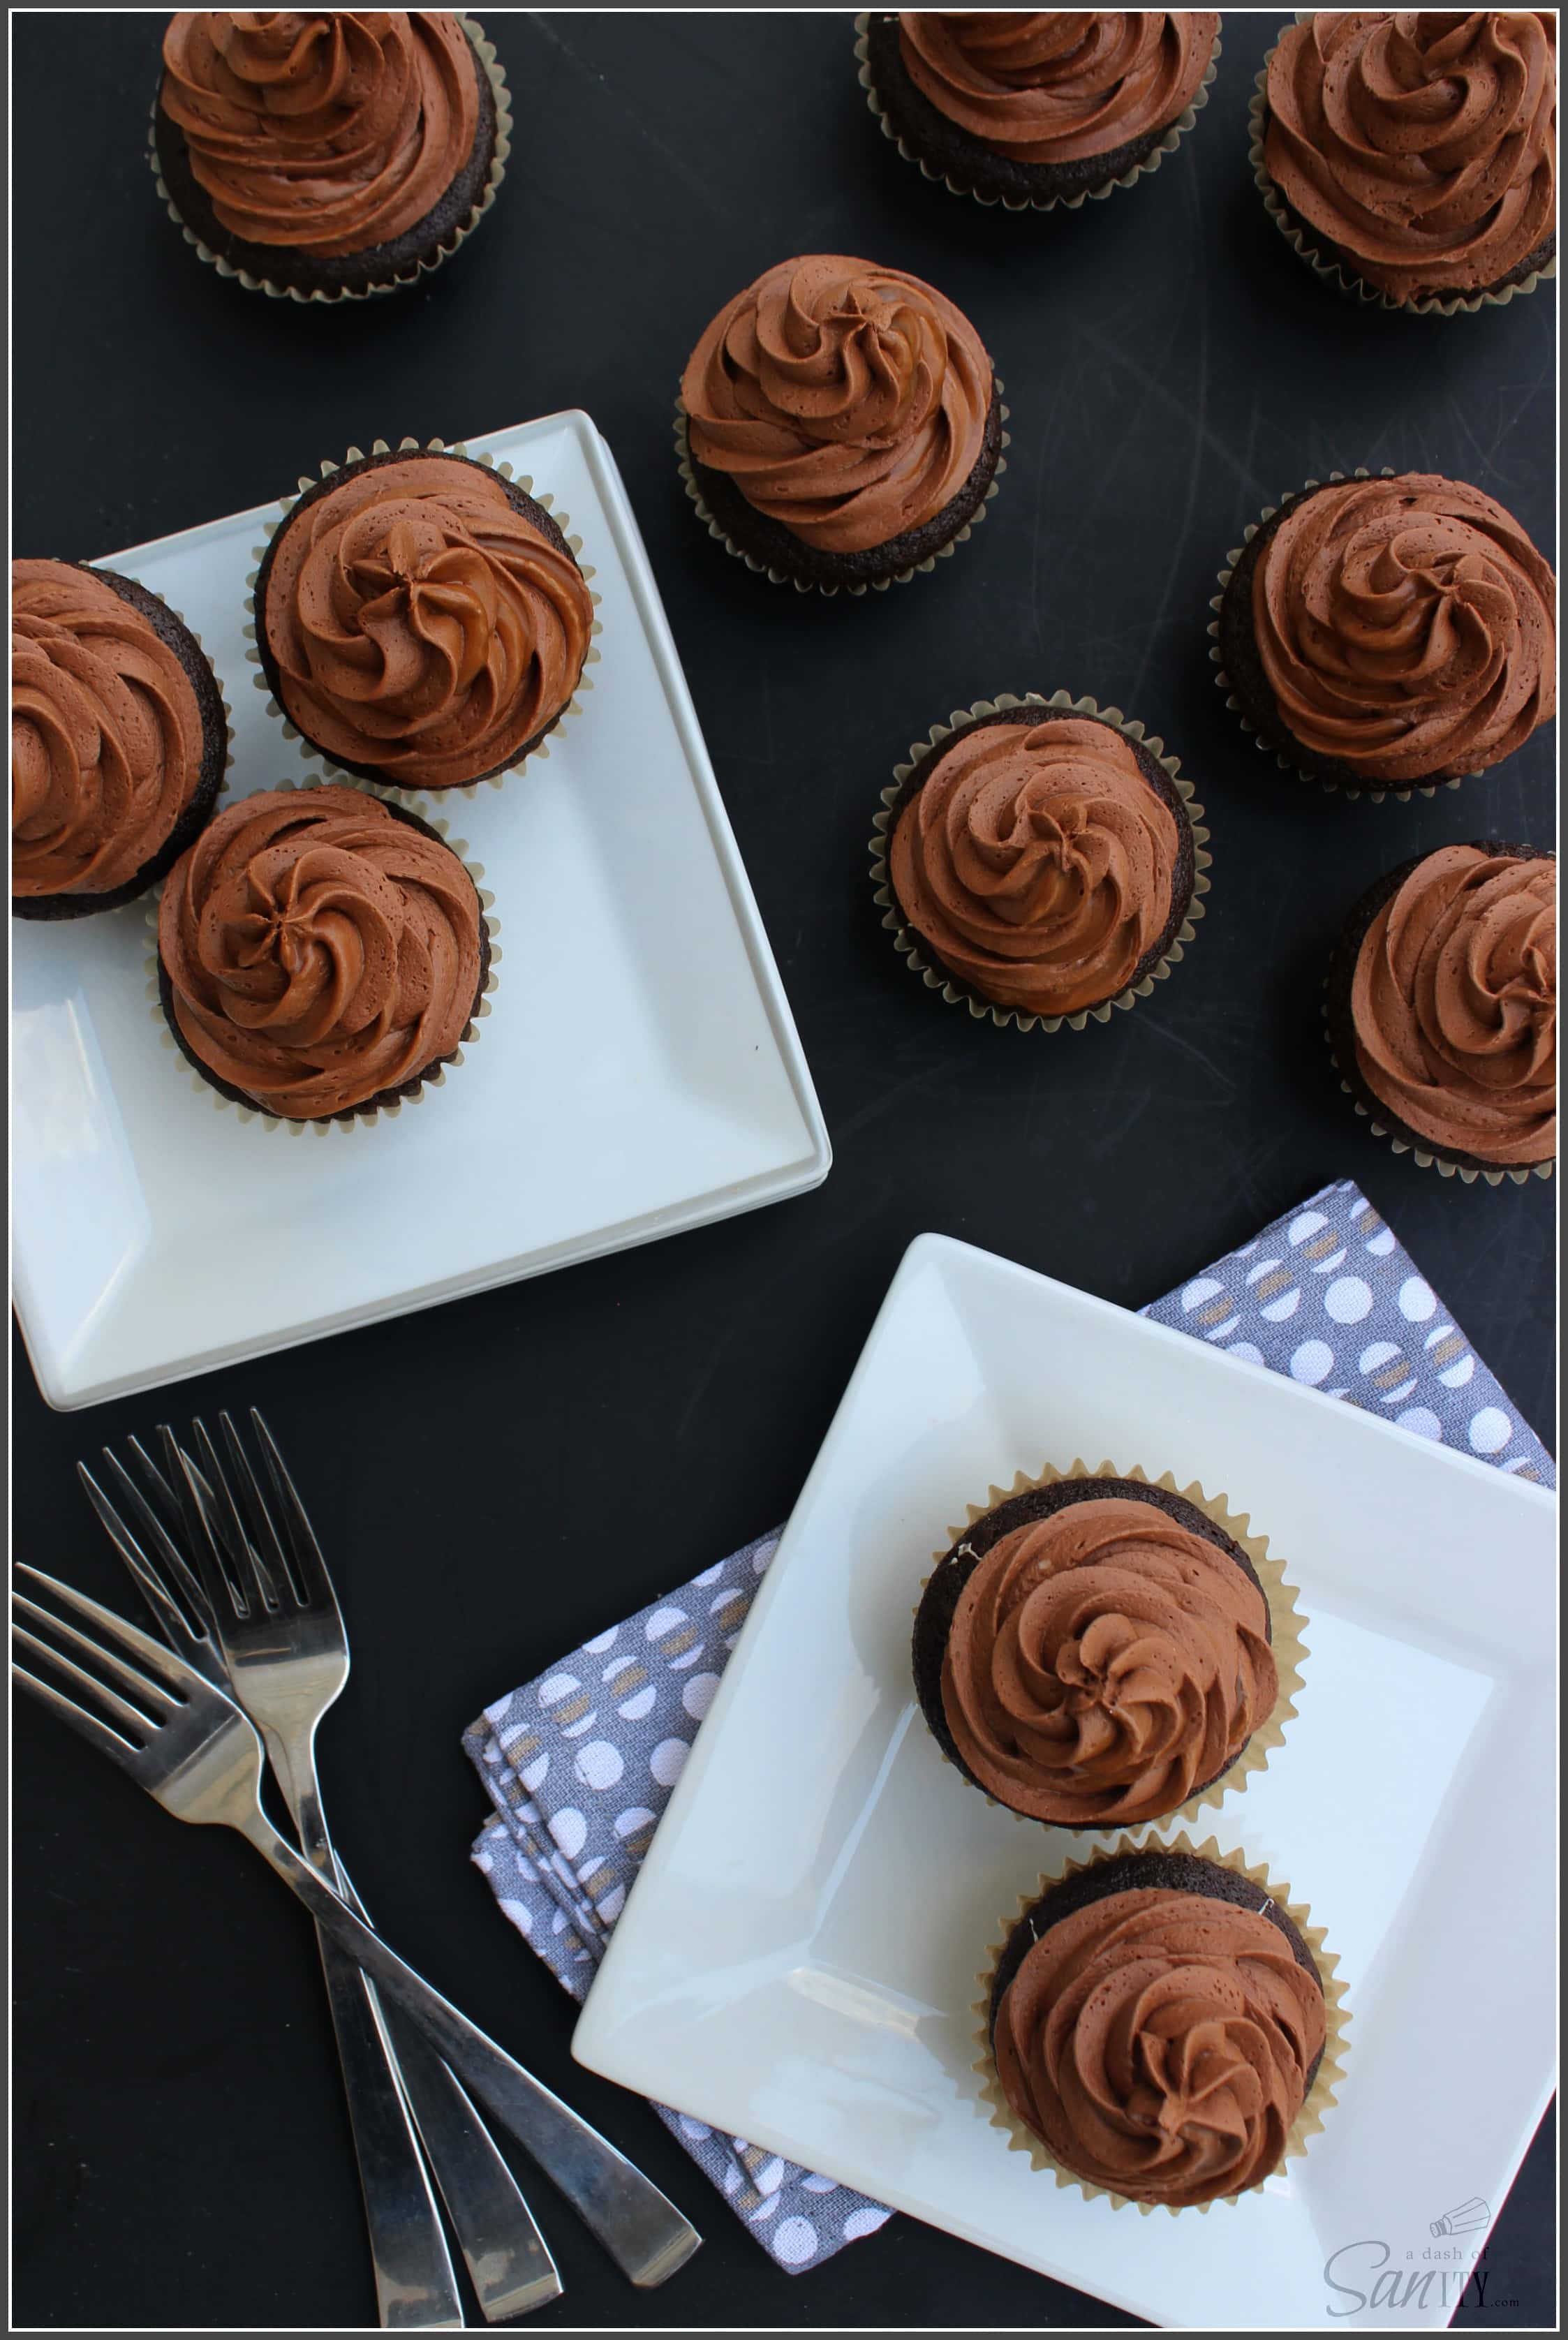 Chocolate Caramel Surprise Cupcakes